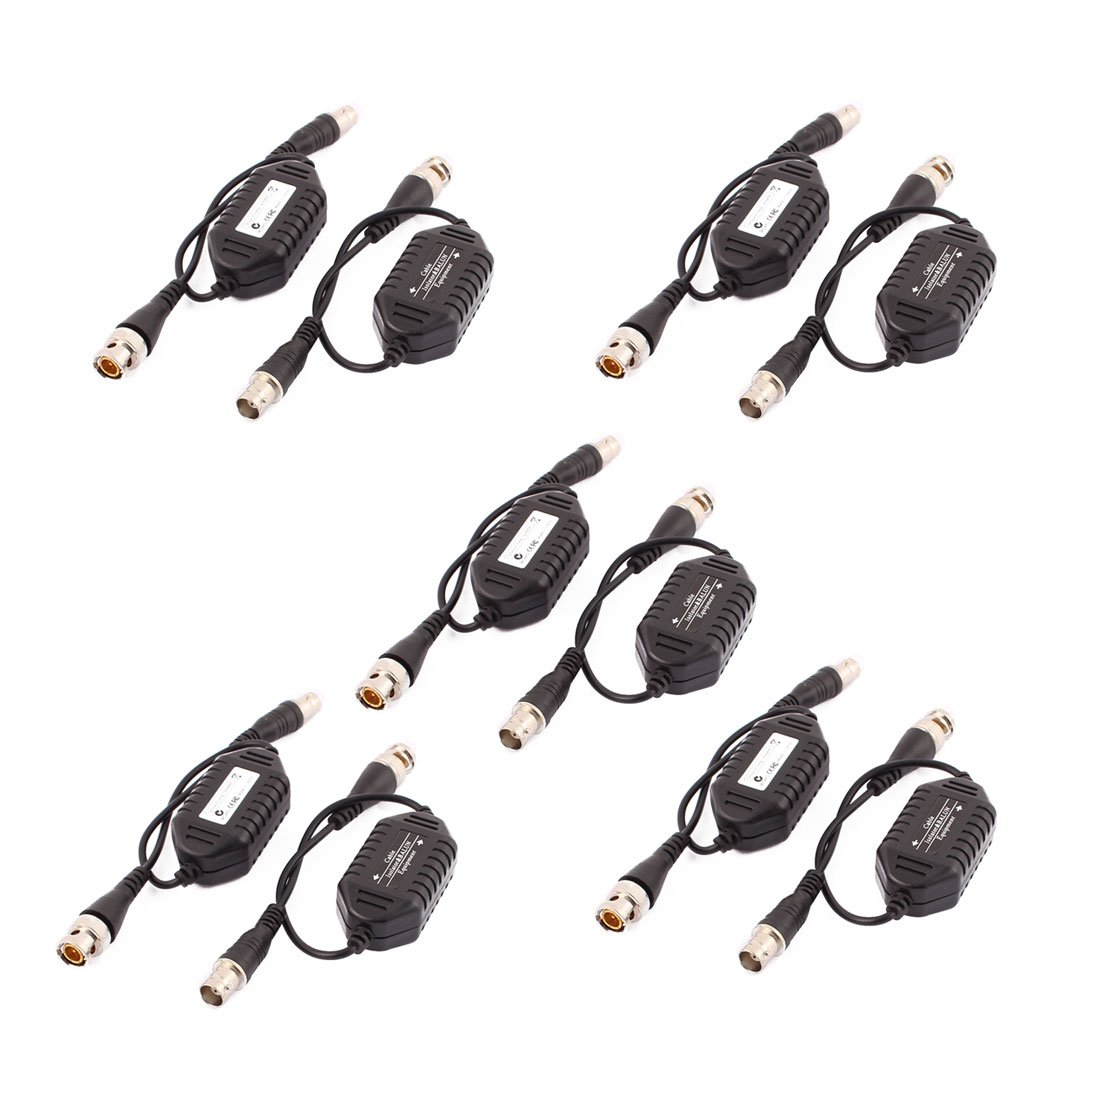 uxcell 10 Pcs Coaxial Video Ground Loop Isolator Balun BNC Male to Female for CCTV Camera by uxcell